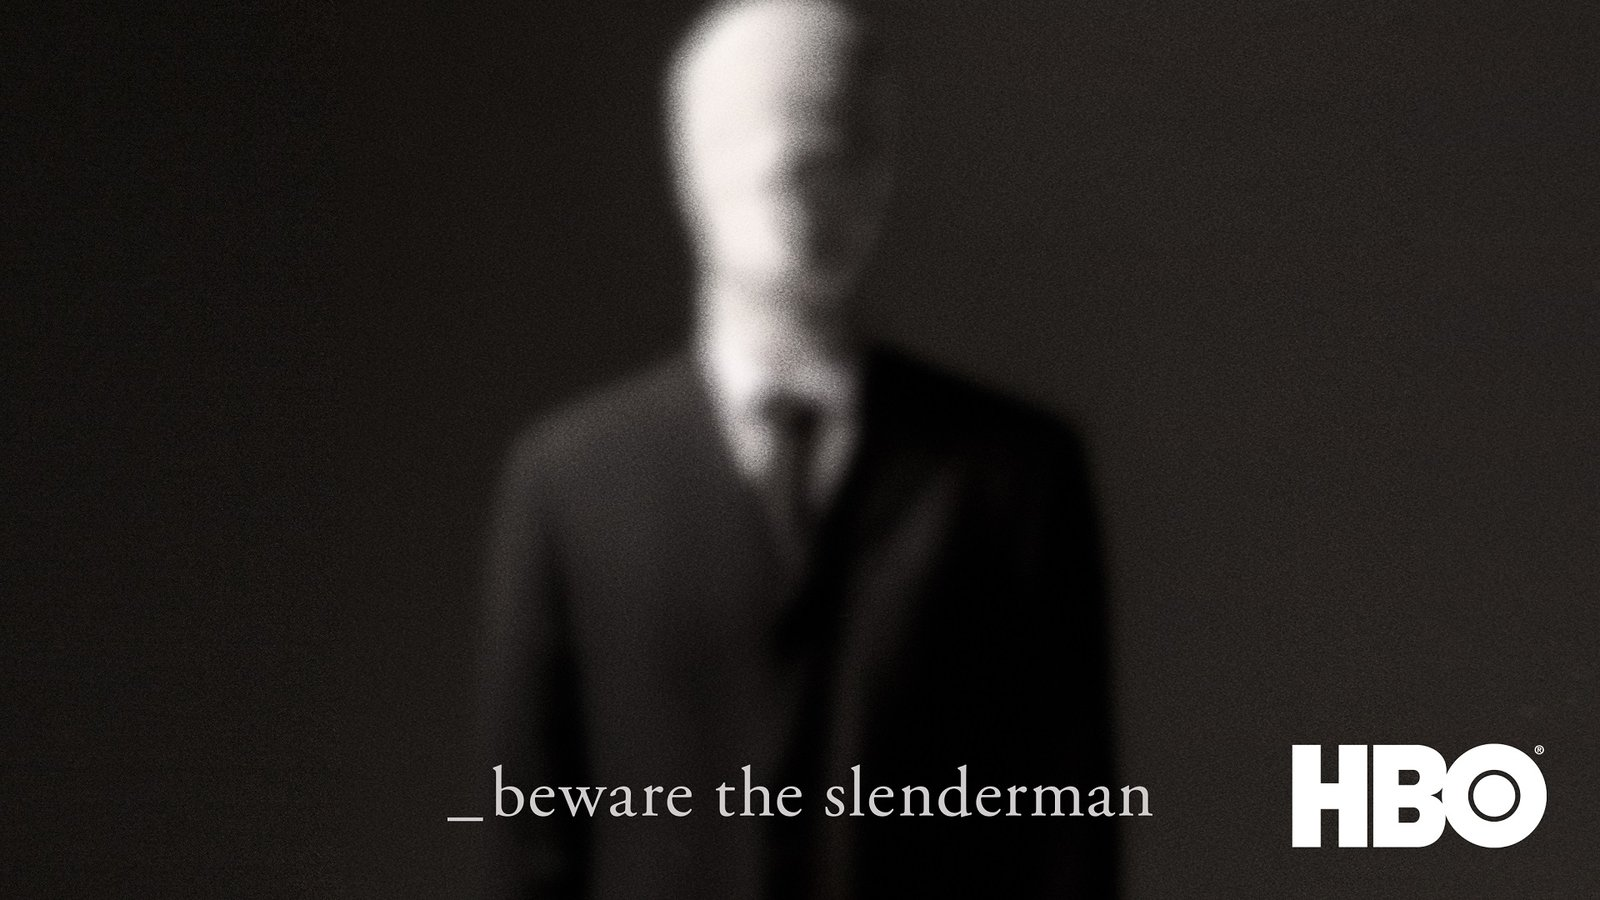 Beware the Slenderman - The Infamous Case Paying Tribute to the Popular Internet Legend